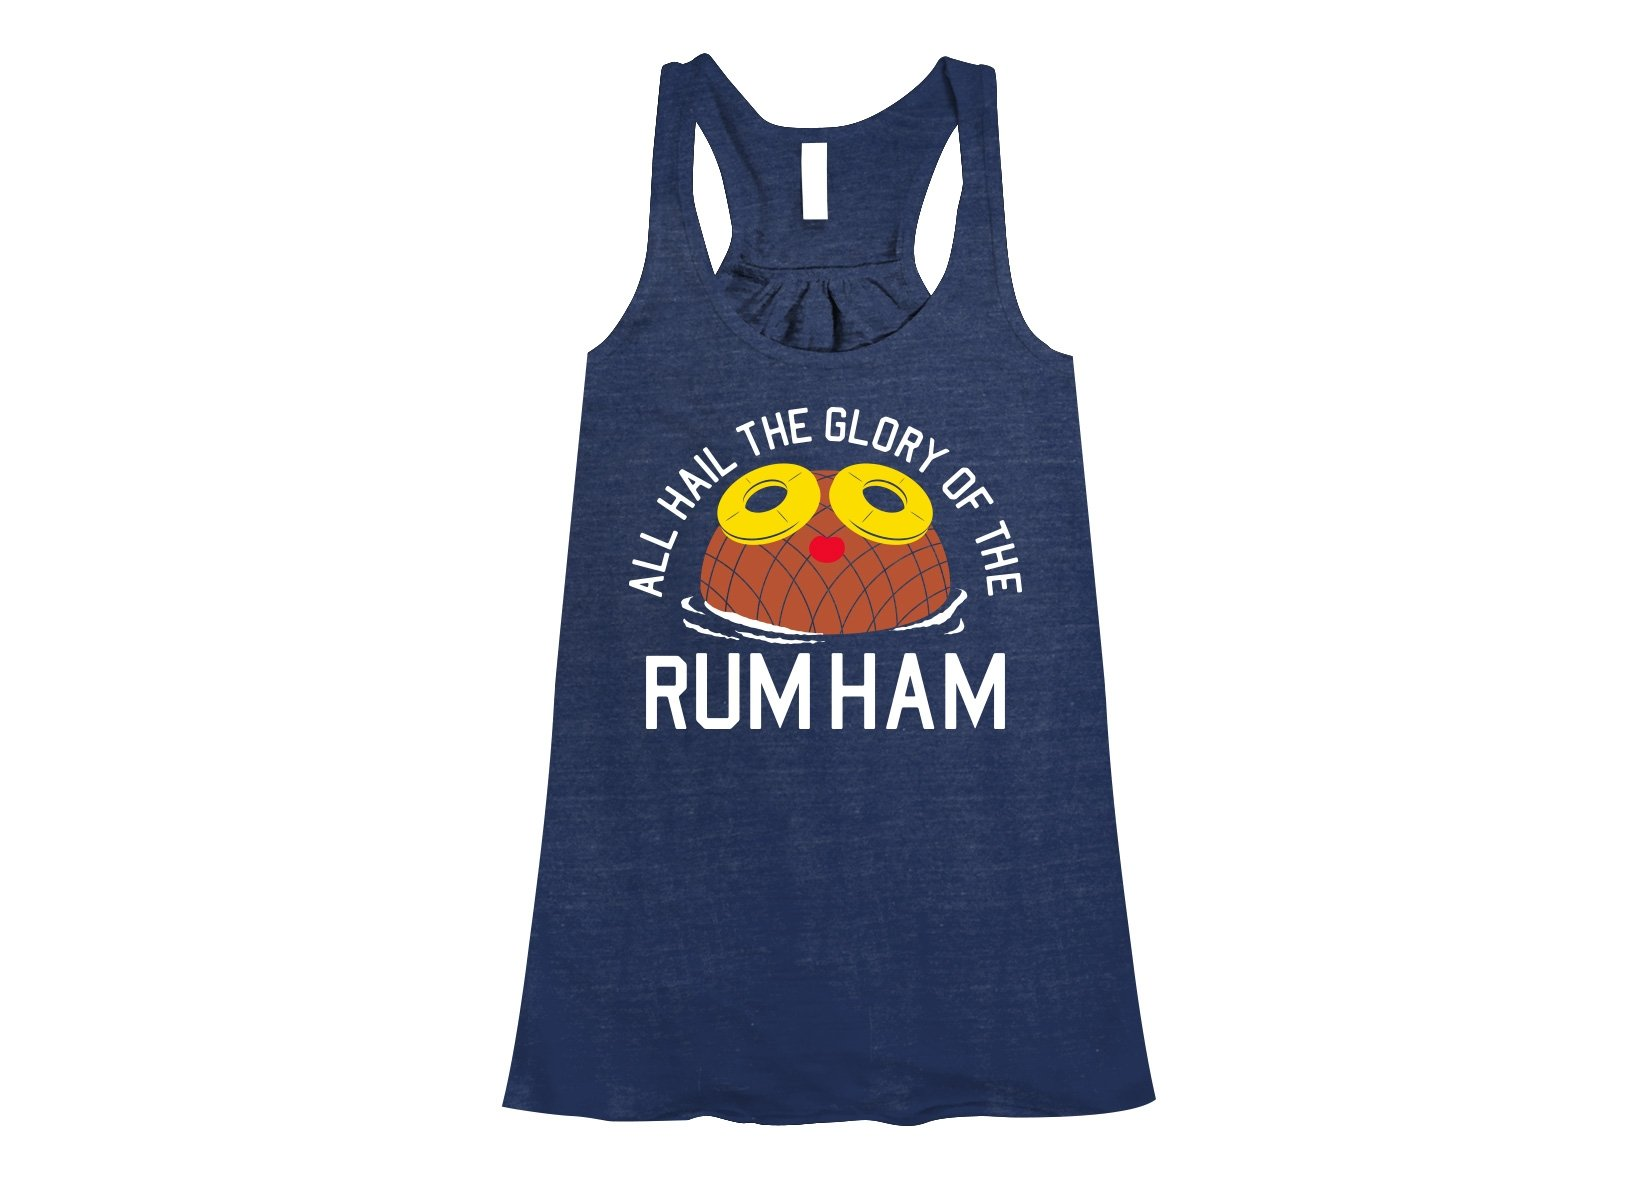 Rum Ham on Womens Tanks T-Shirt